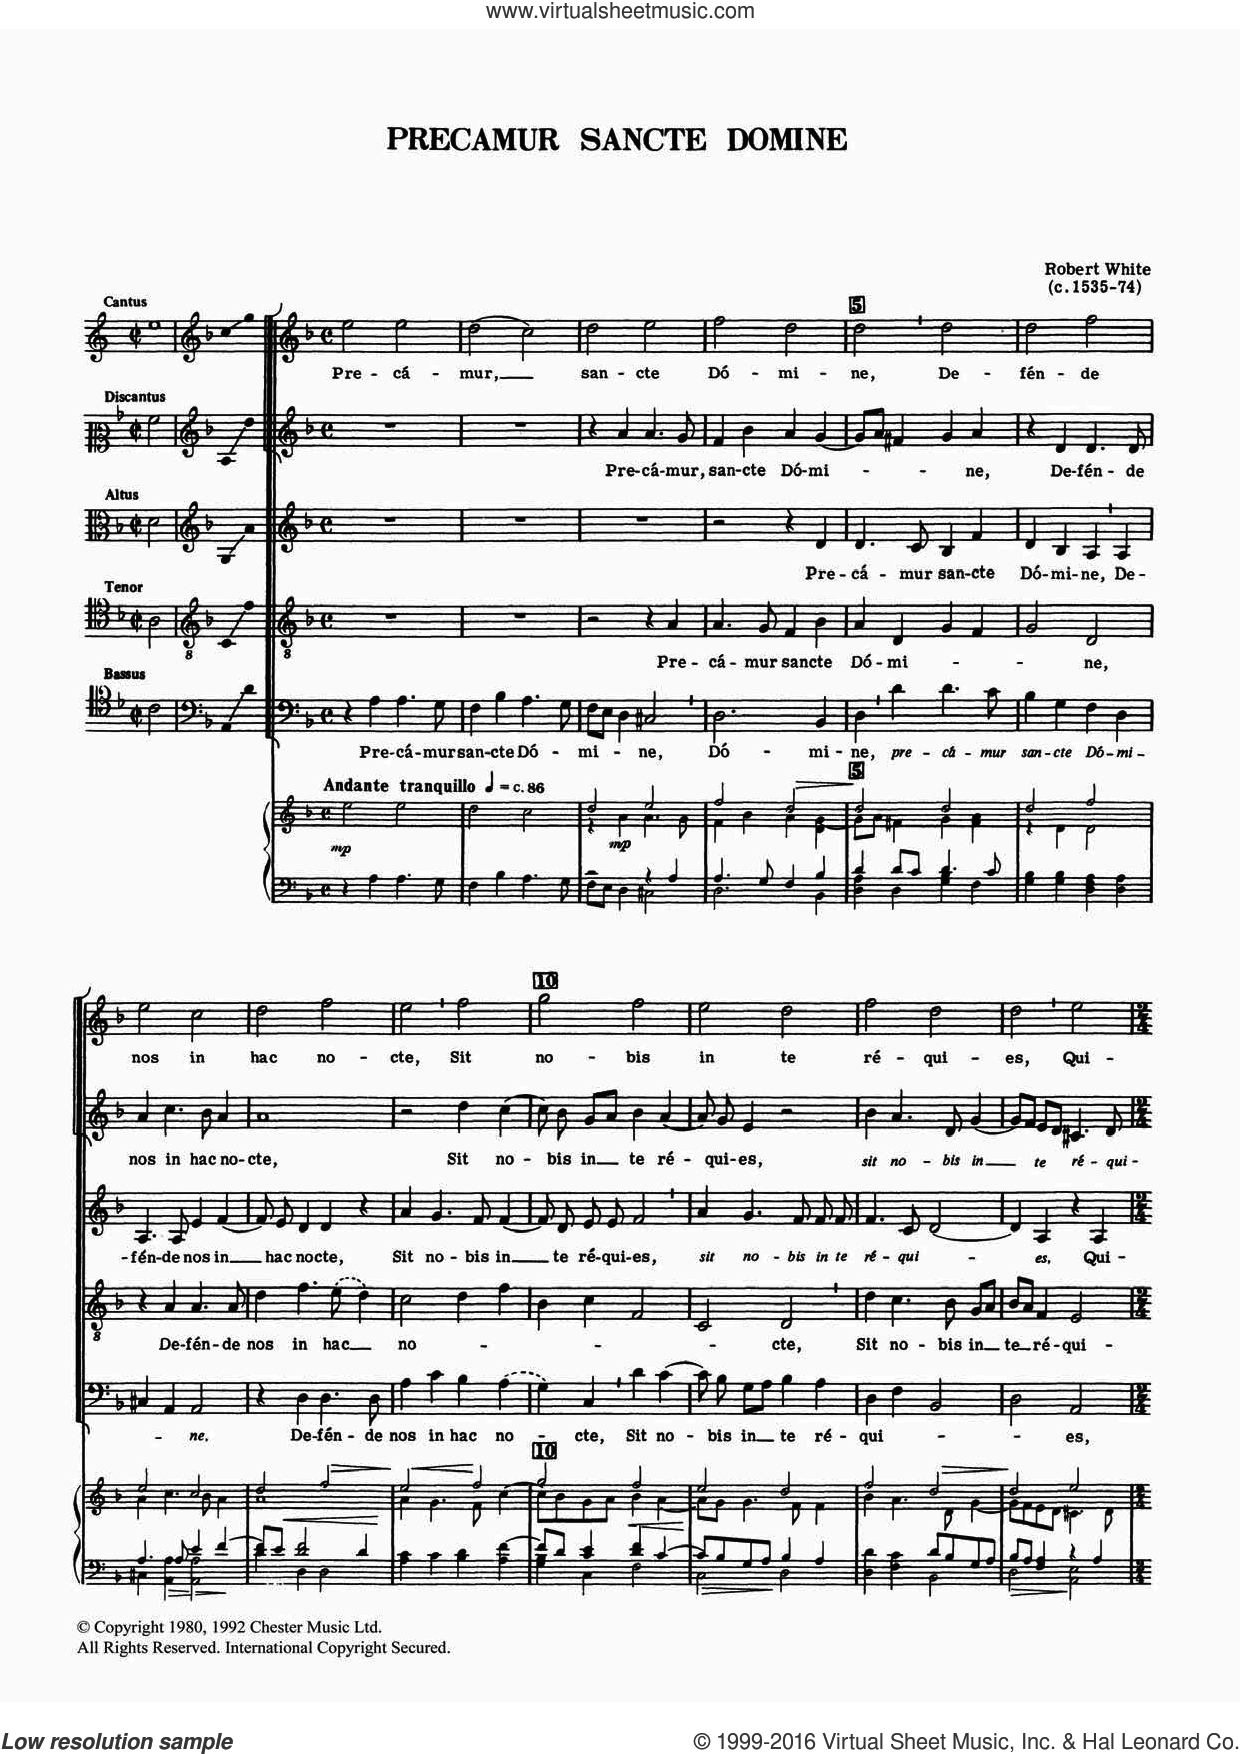 Precamur Sancte Domine sheet music for voice, piano or guitar by Robert White, classical score, intermediate skill level